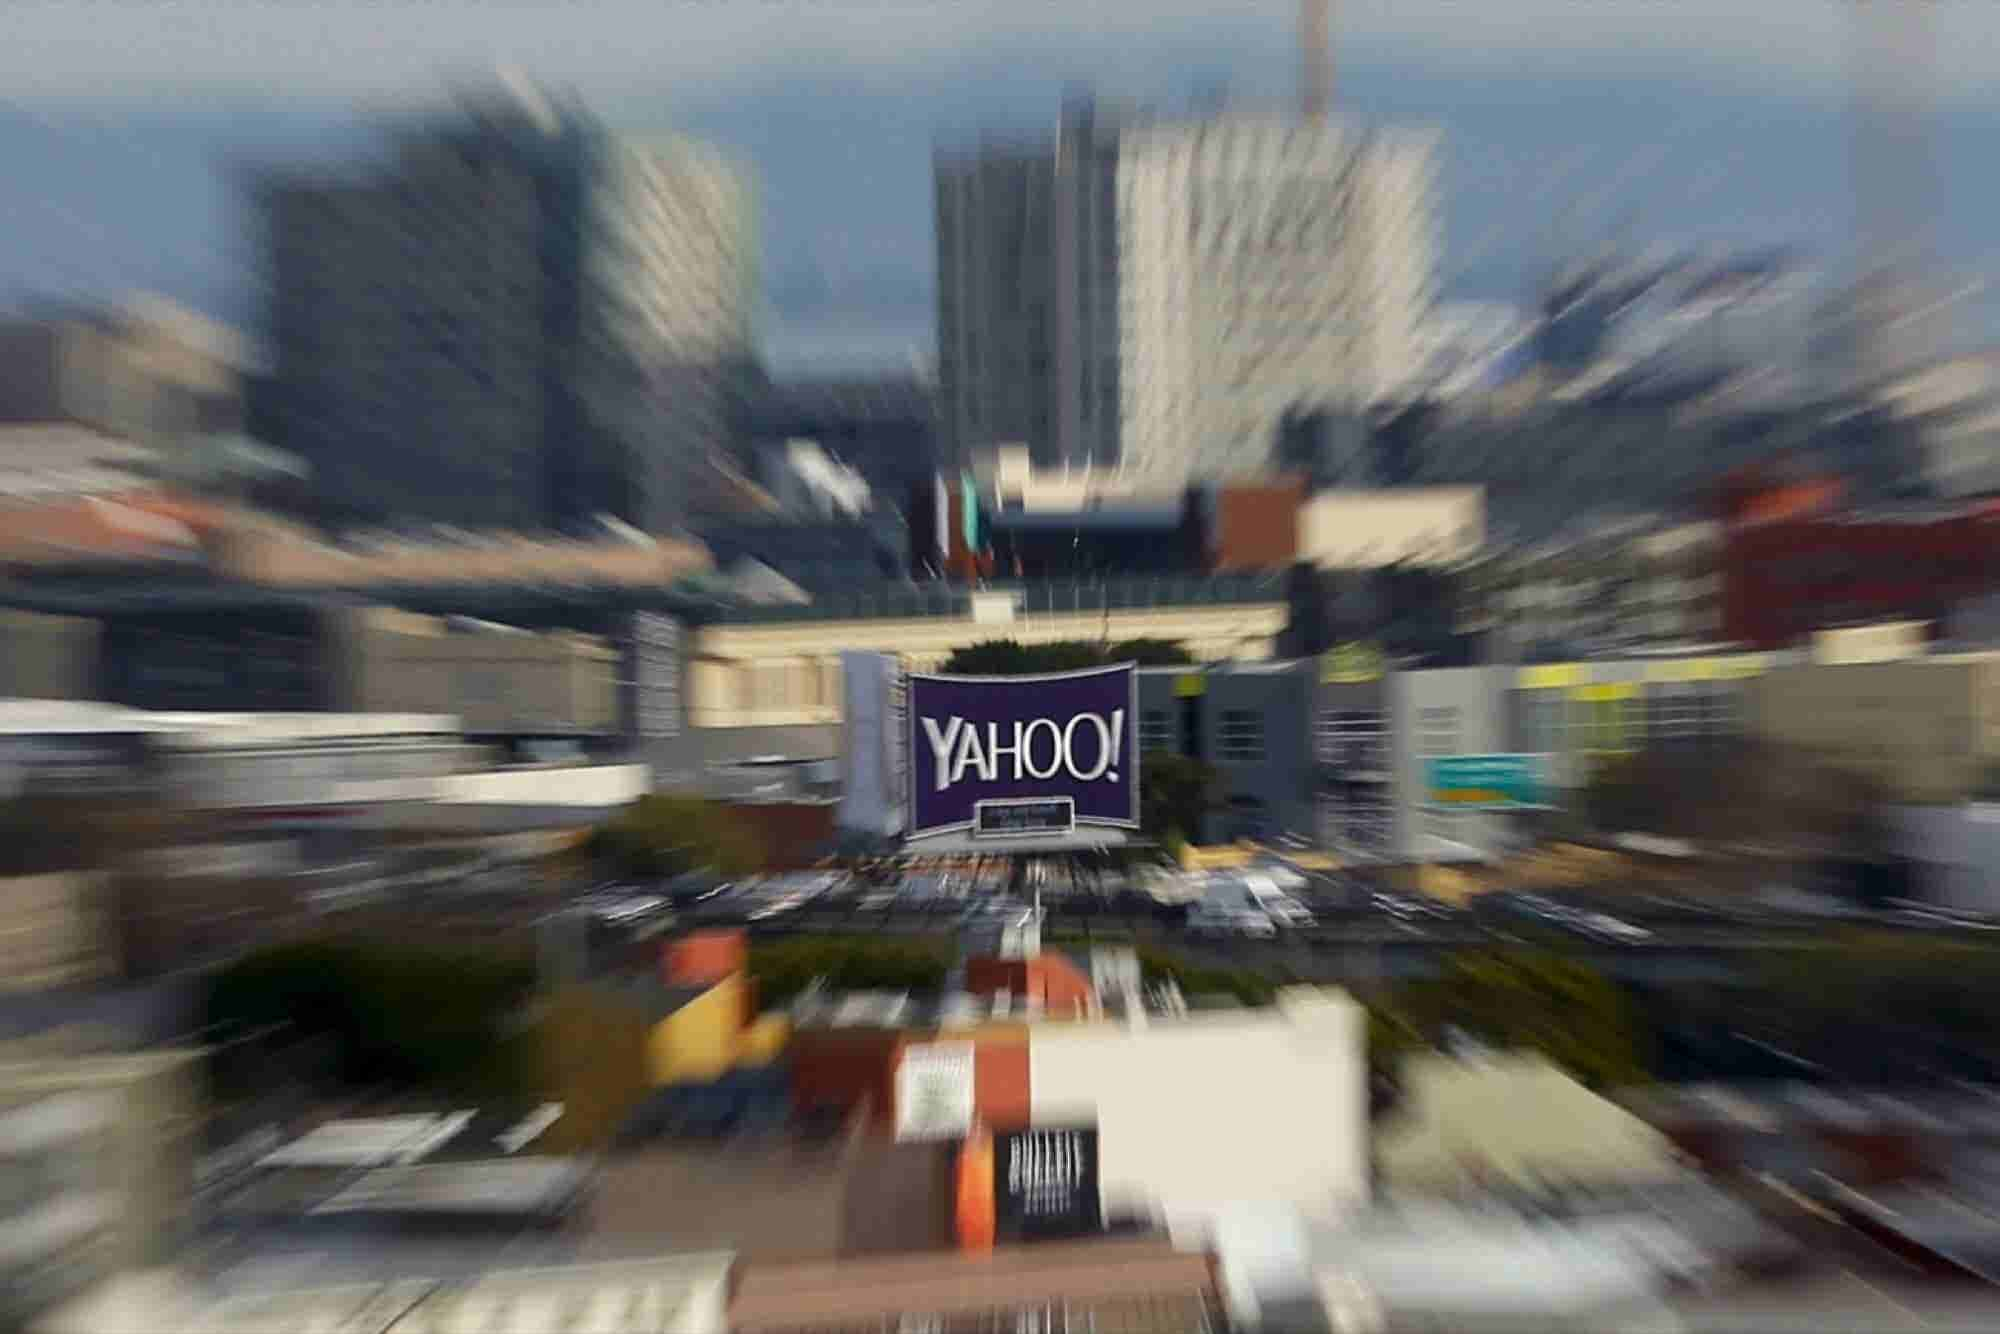 Yahoo Secretly Scanned Customer Emails for U.S. Intelligence